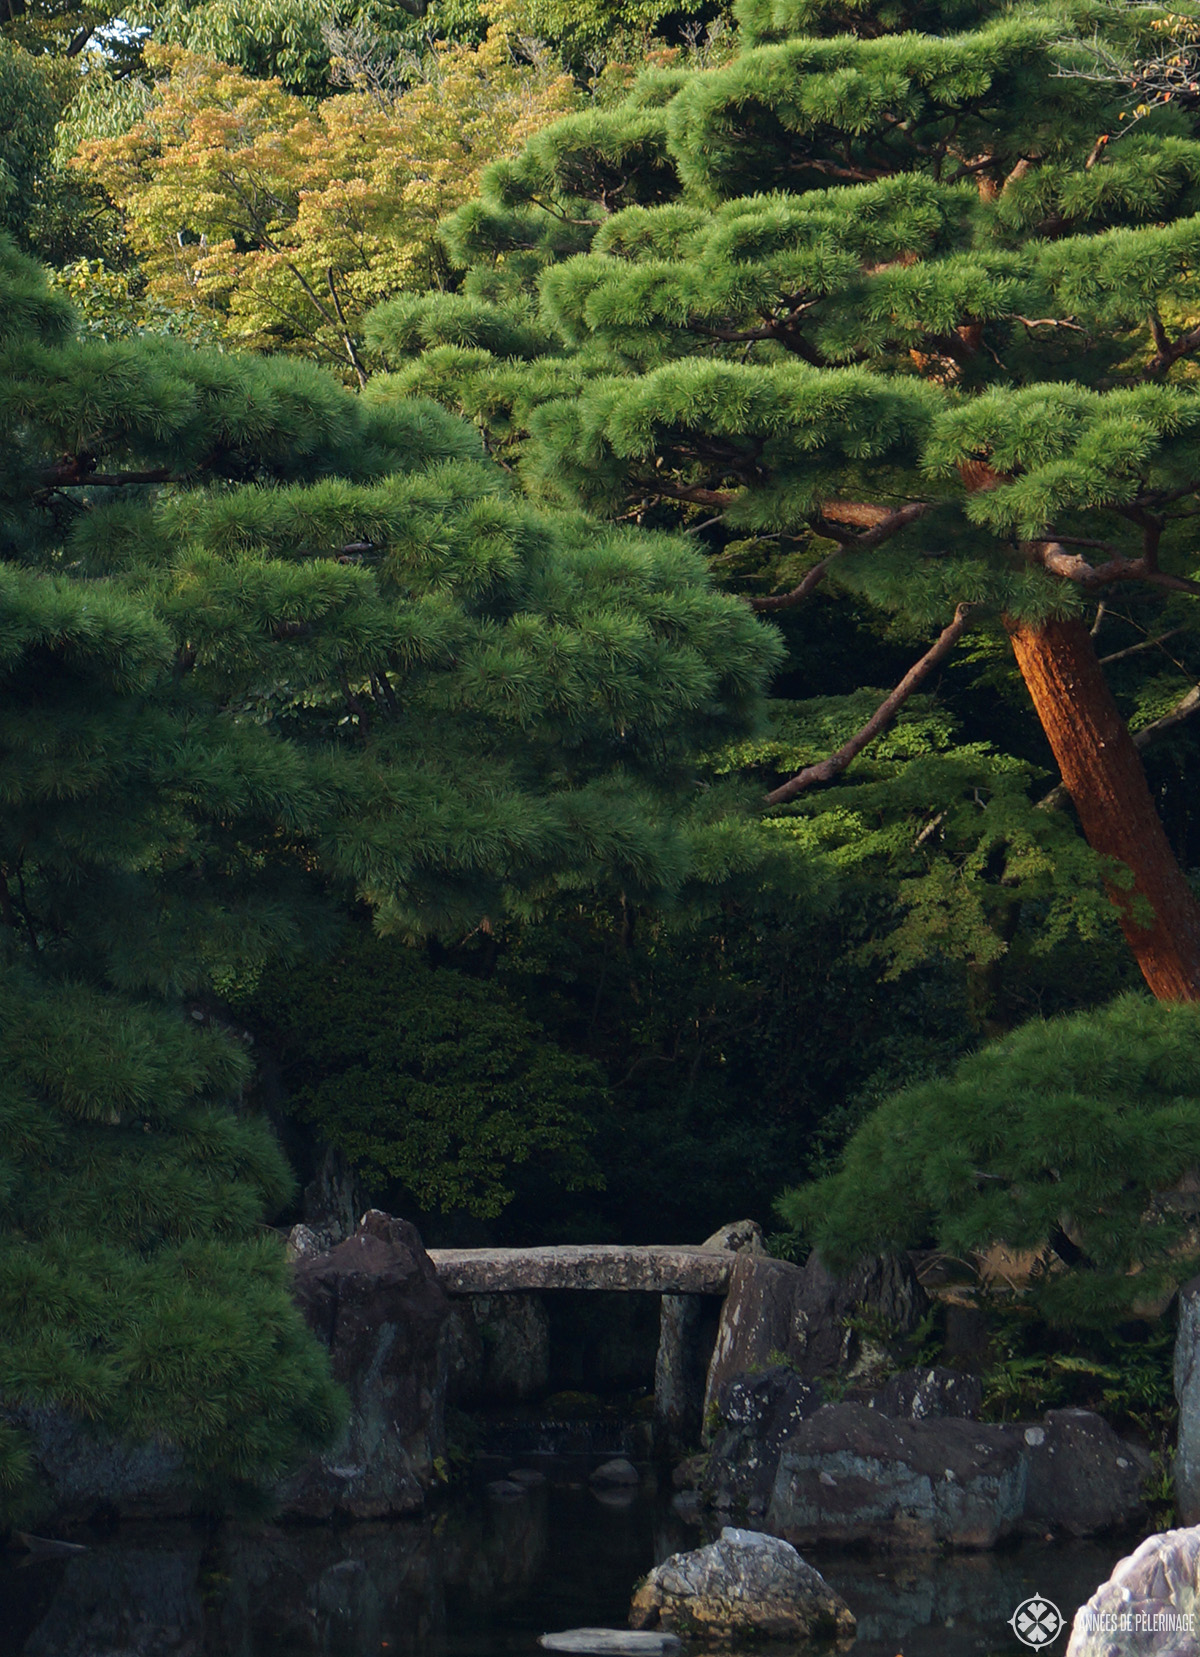 The gardens of the imperial vKatsura villa in kyoto